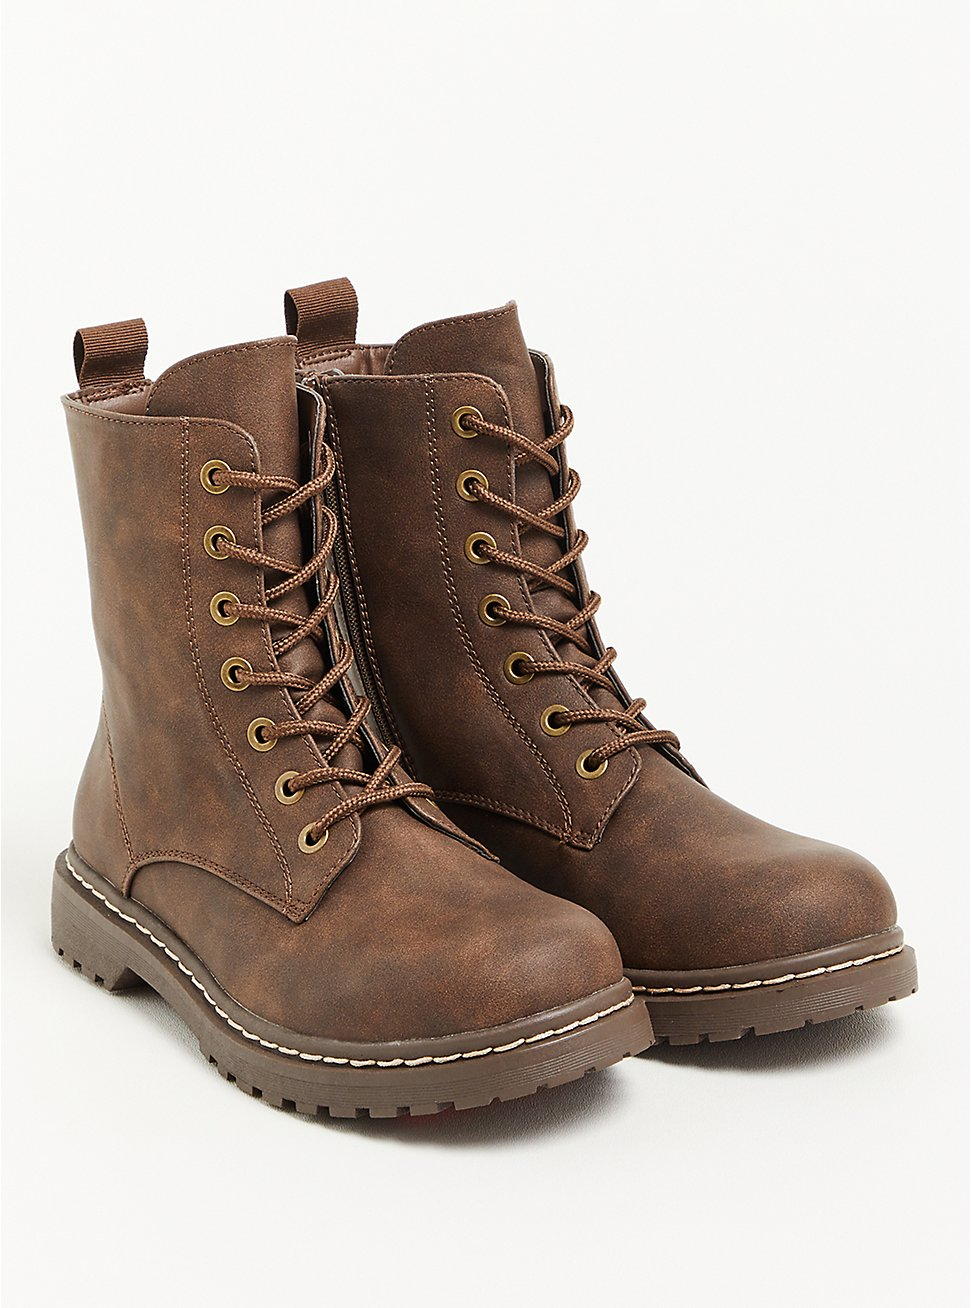 Stevie Combat Boot - Faux Leather Brown (WW), BROWN, hi-res